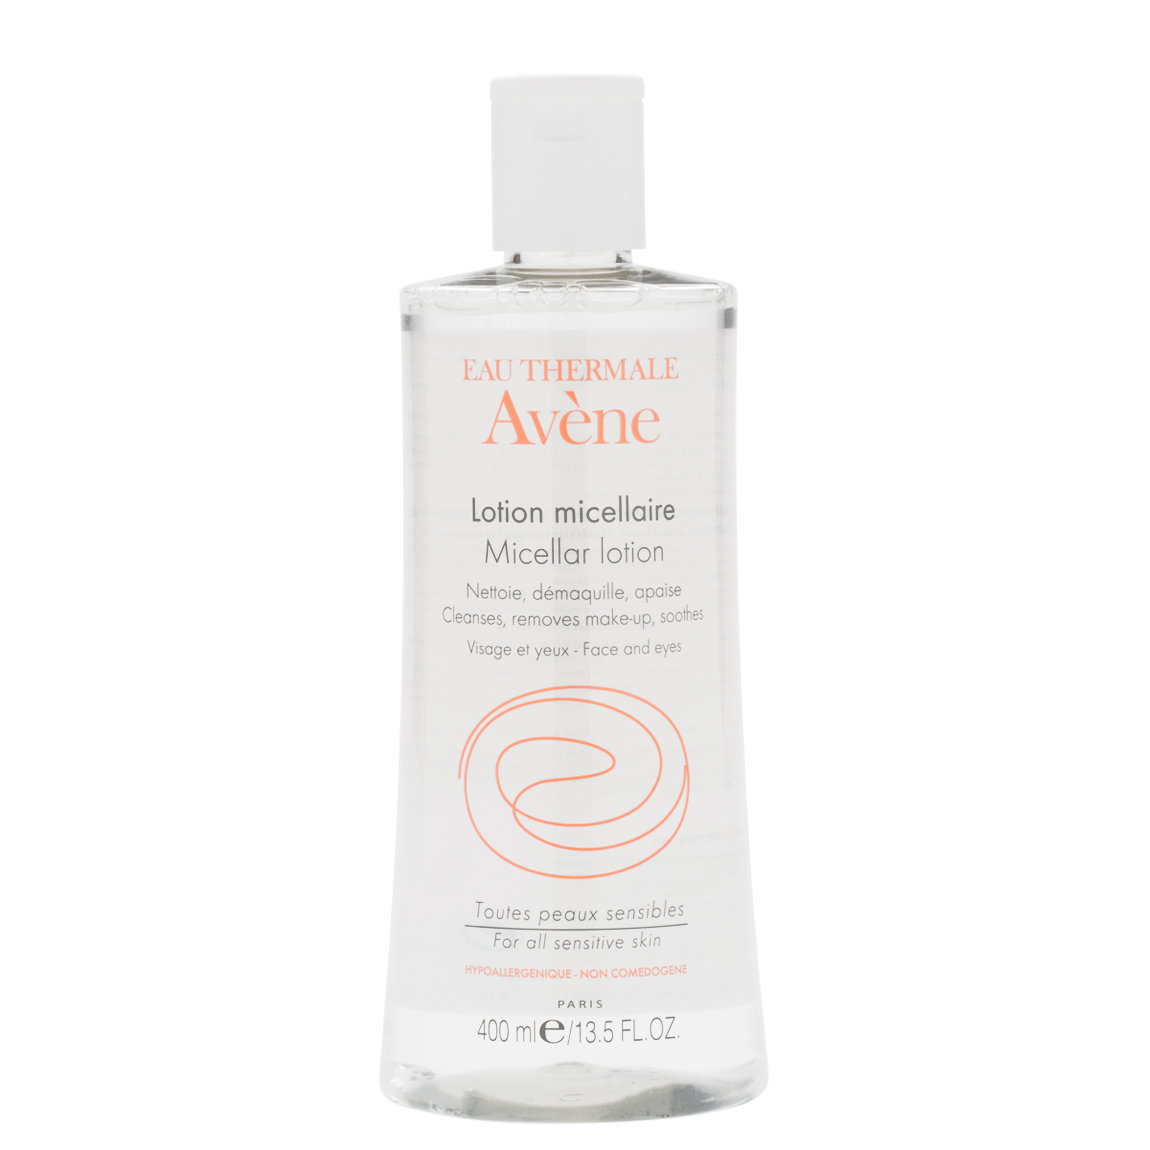 Eau Thermale Avène Micellar Lotion Cleansing and Make-Up Remover 400 ml product swatch.